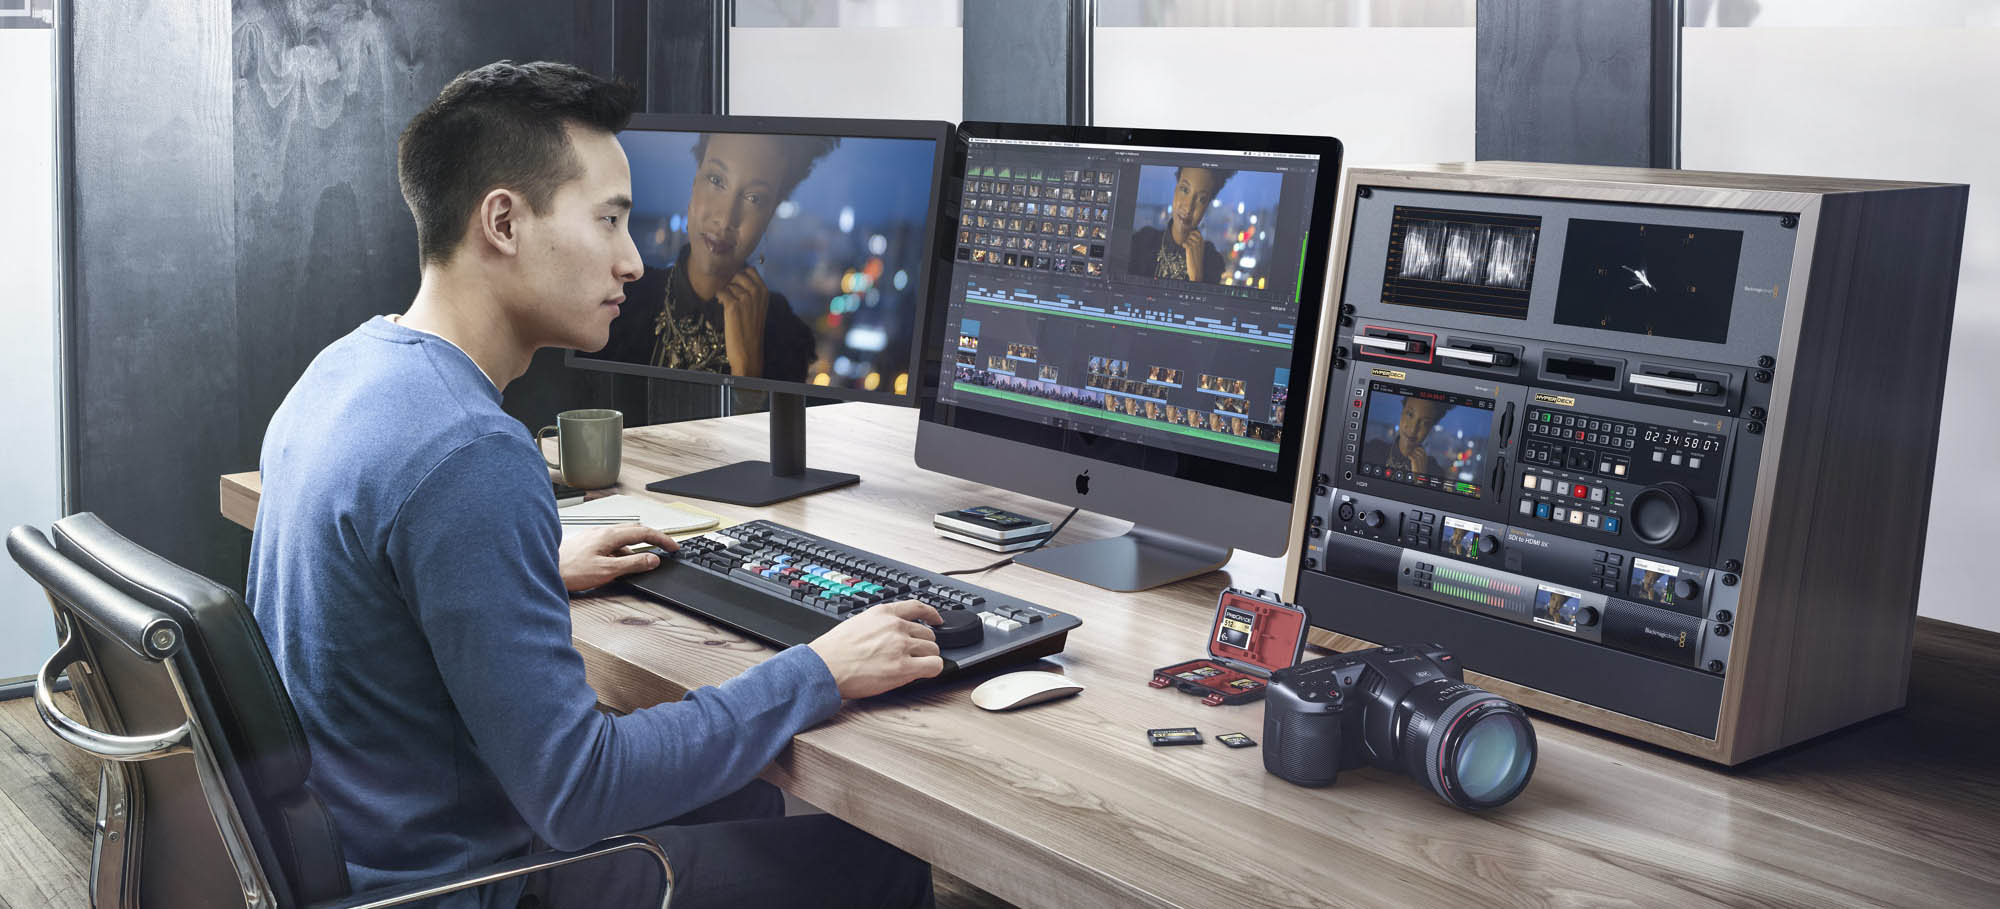 How to get started with Davinci Resolve in under 30 minutes